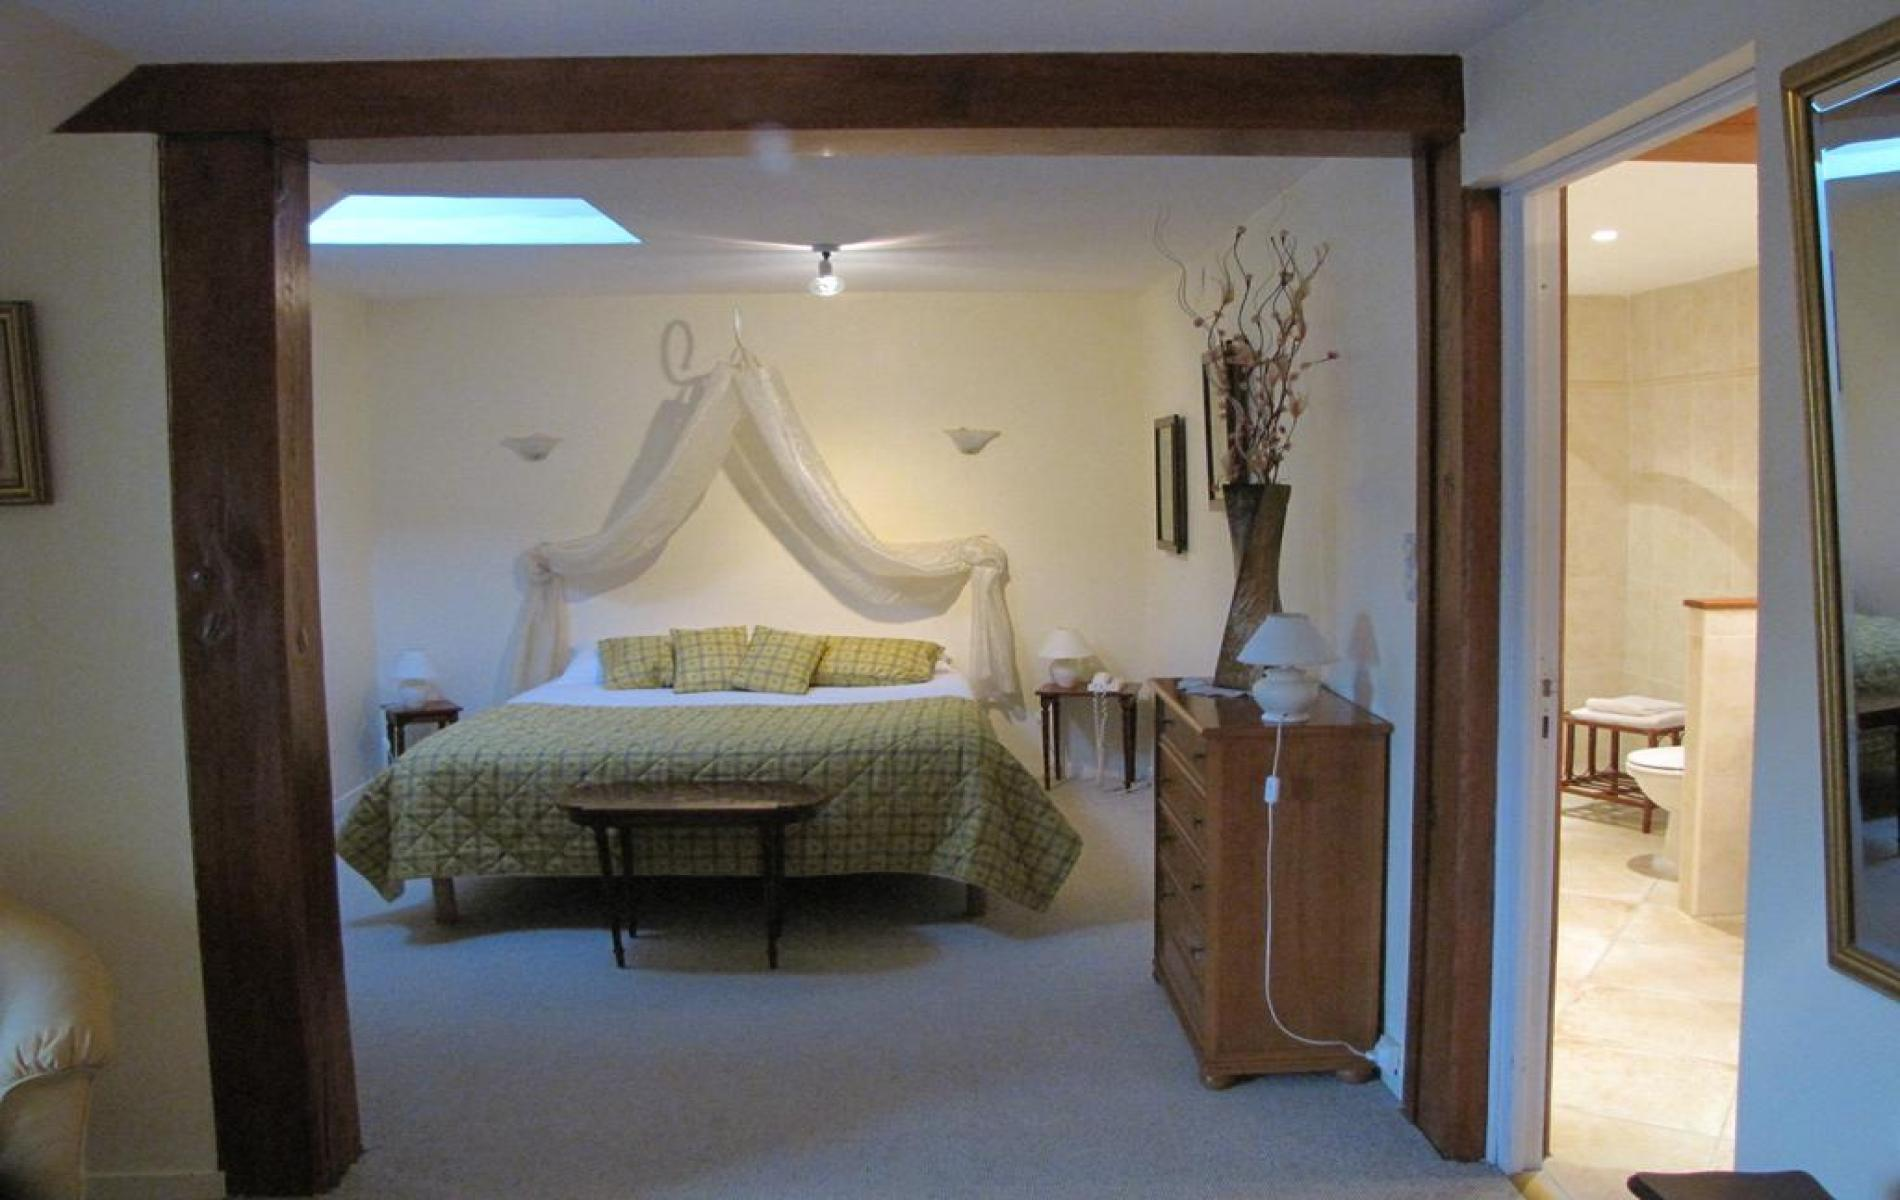 Rooms at Les Etangs de Guibert